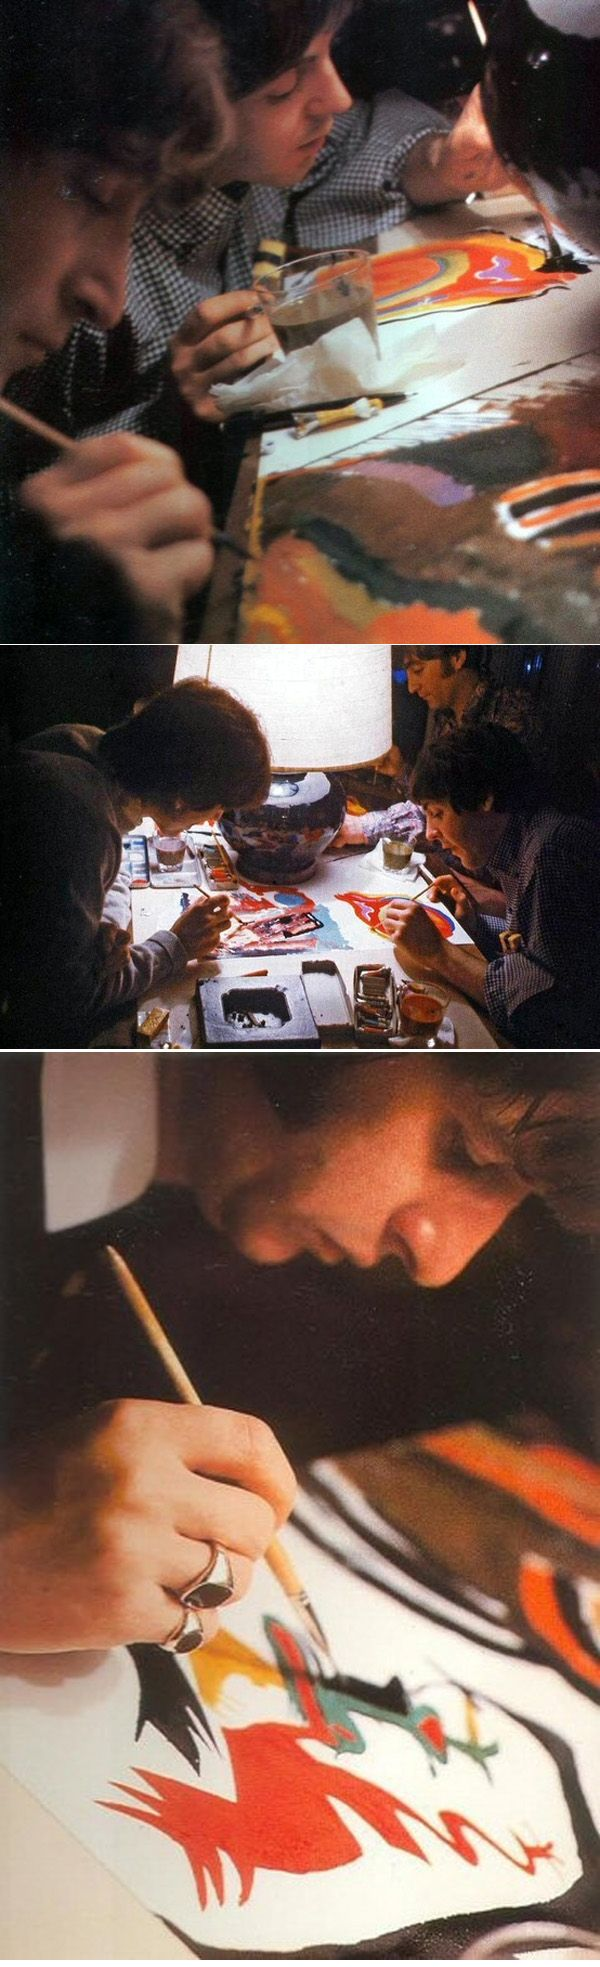 En mi casa/estudio siempre esta llena de amigos artistas dibujando o pintando.   The Beatles, painting together